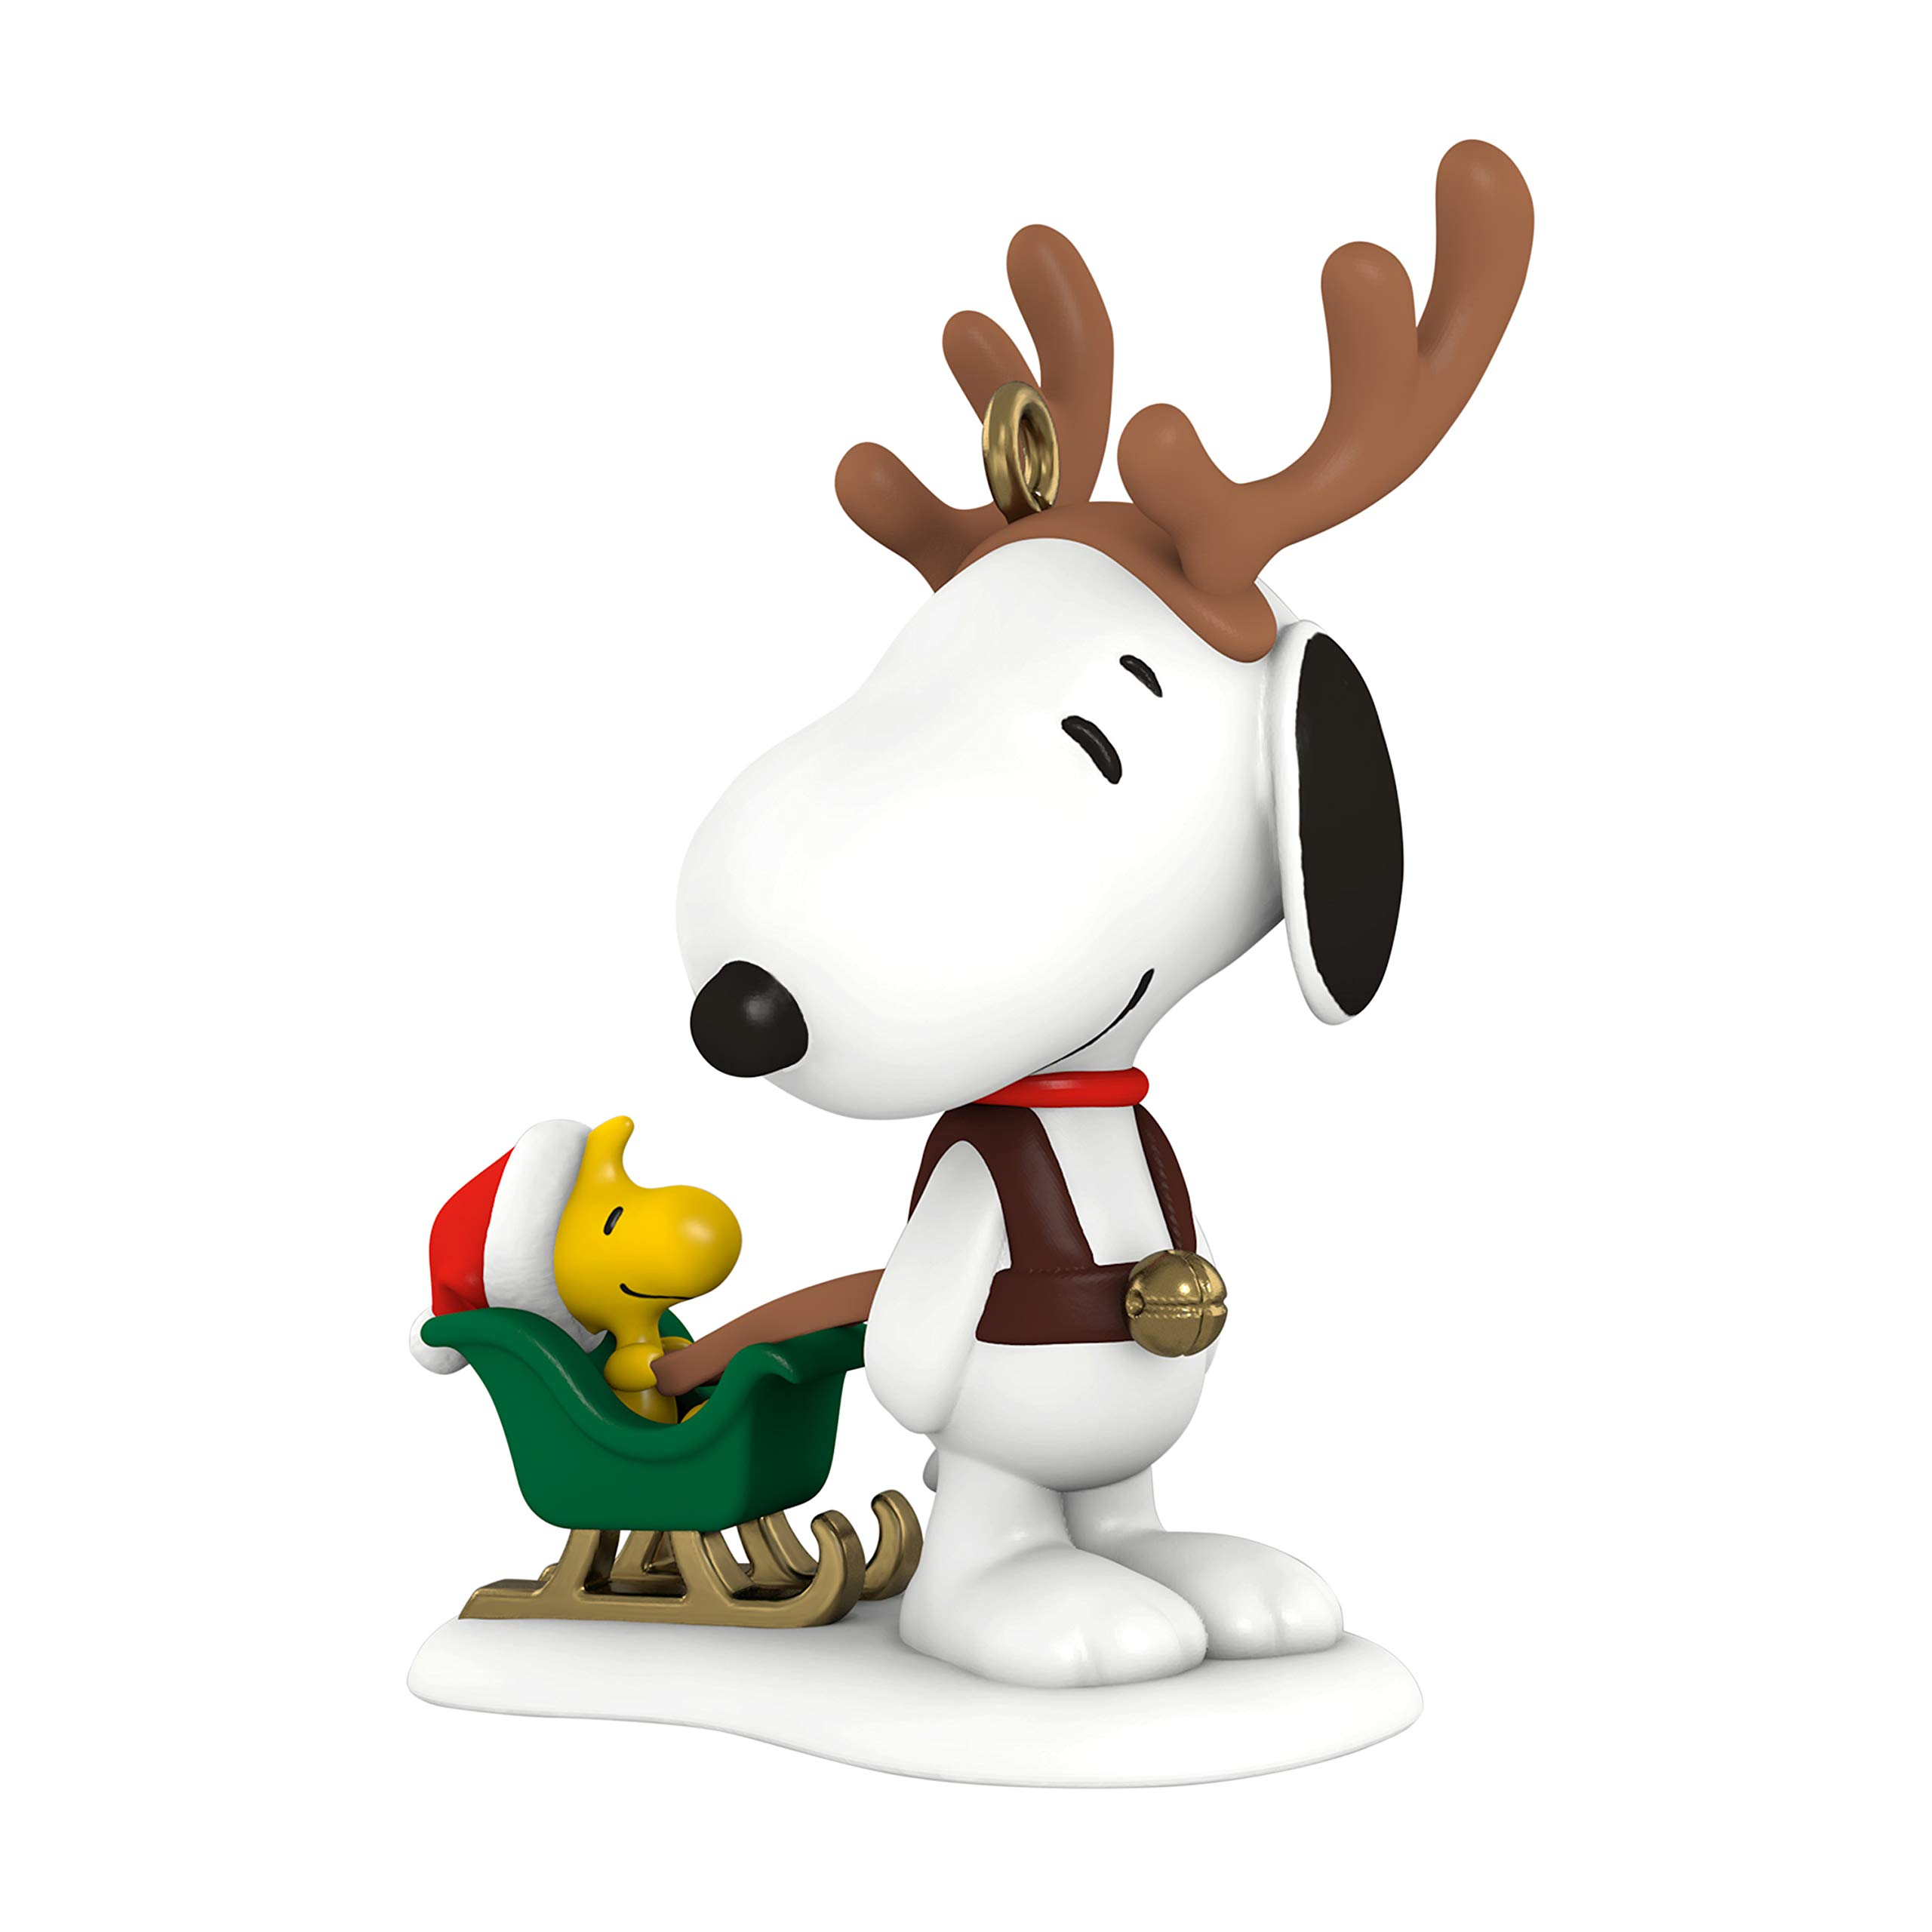 Image of Cute Hallmark Peanuts Reindeer Snoopy Christmas Ornament - See More Snoopy Ornaments